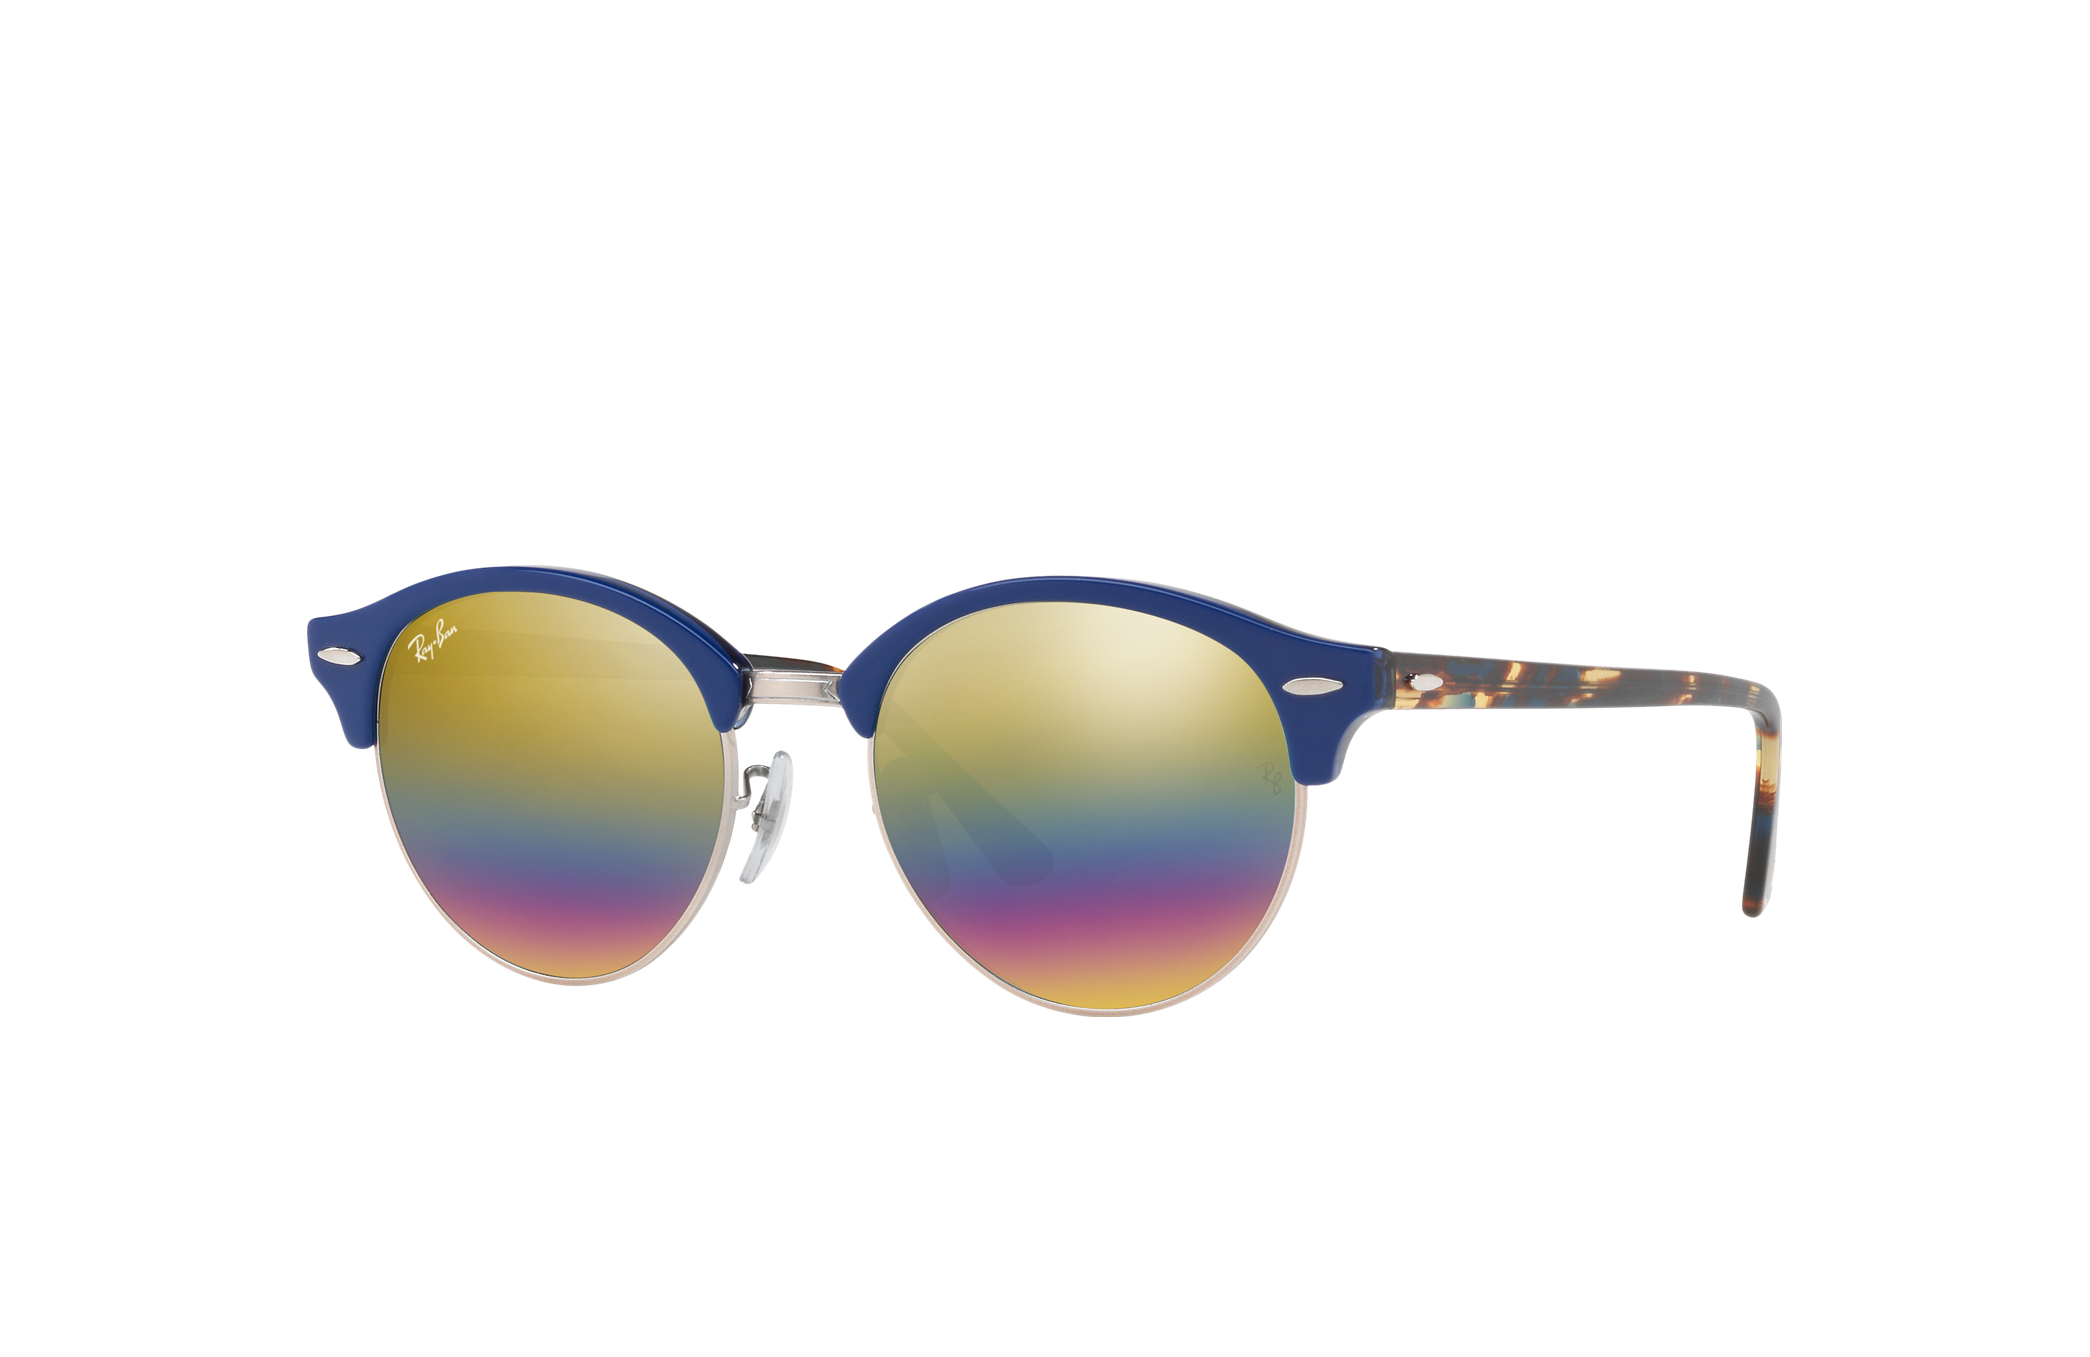 Ray-Ban Clubround Mineral Flash Lenses Blue, Yellow Lenses - RB4246